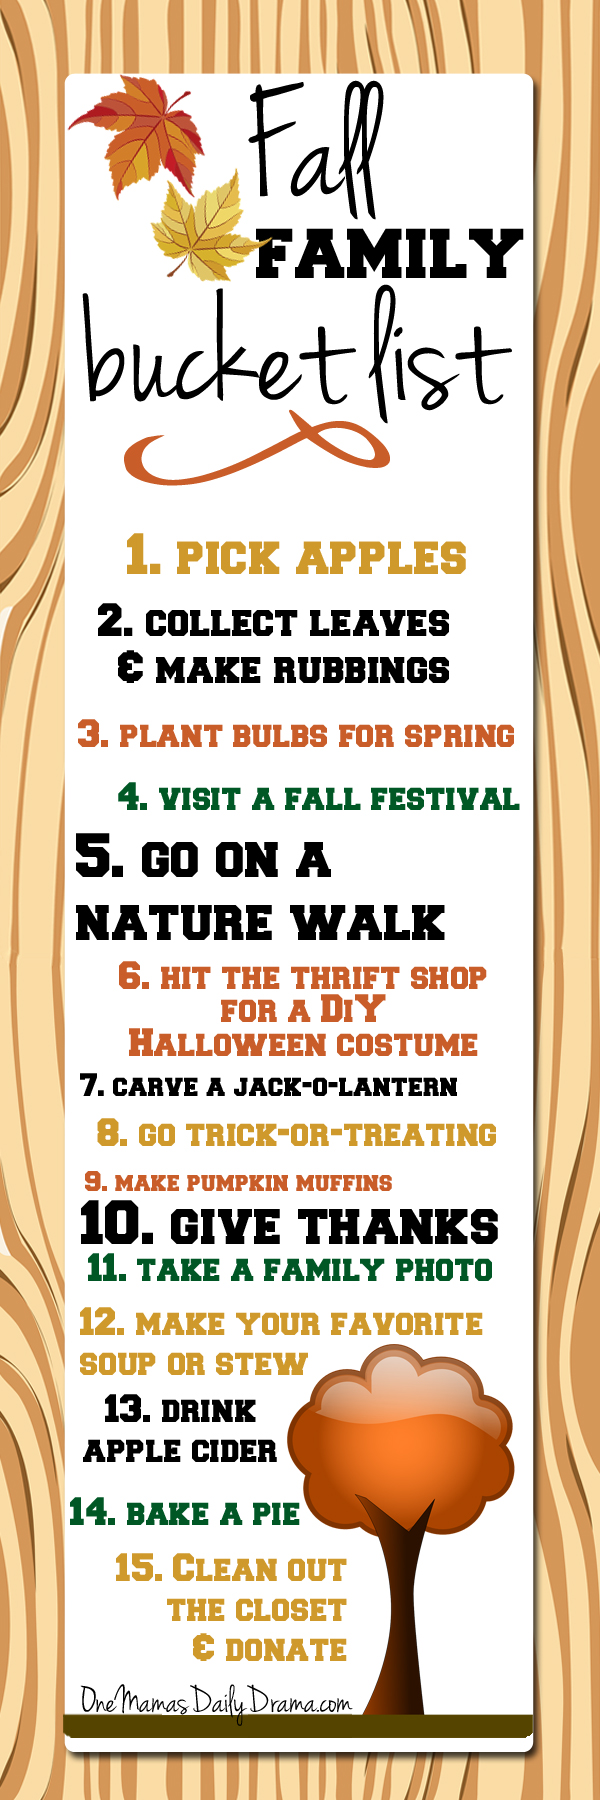 Fall family bucket list infographic with 15 ideas